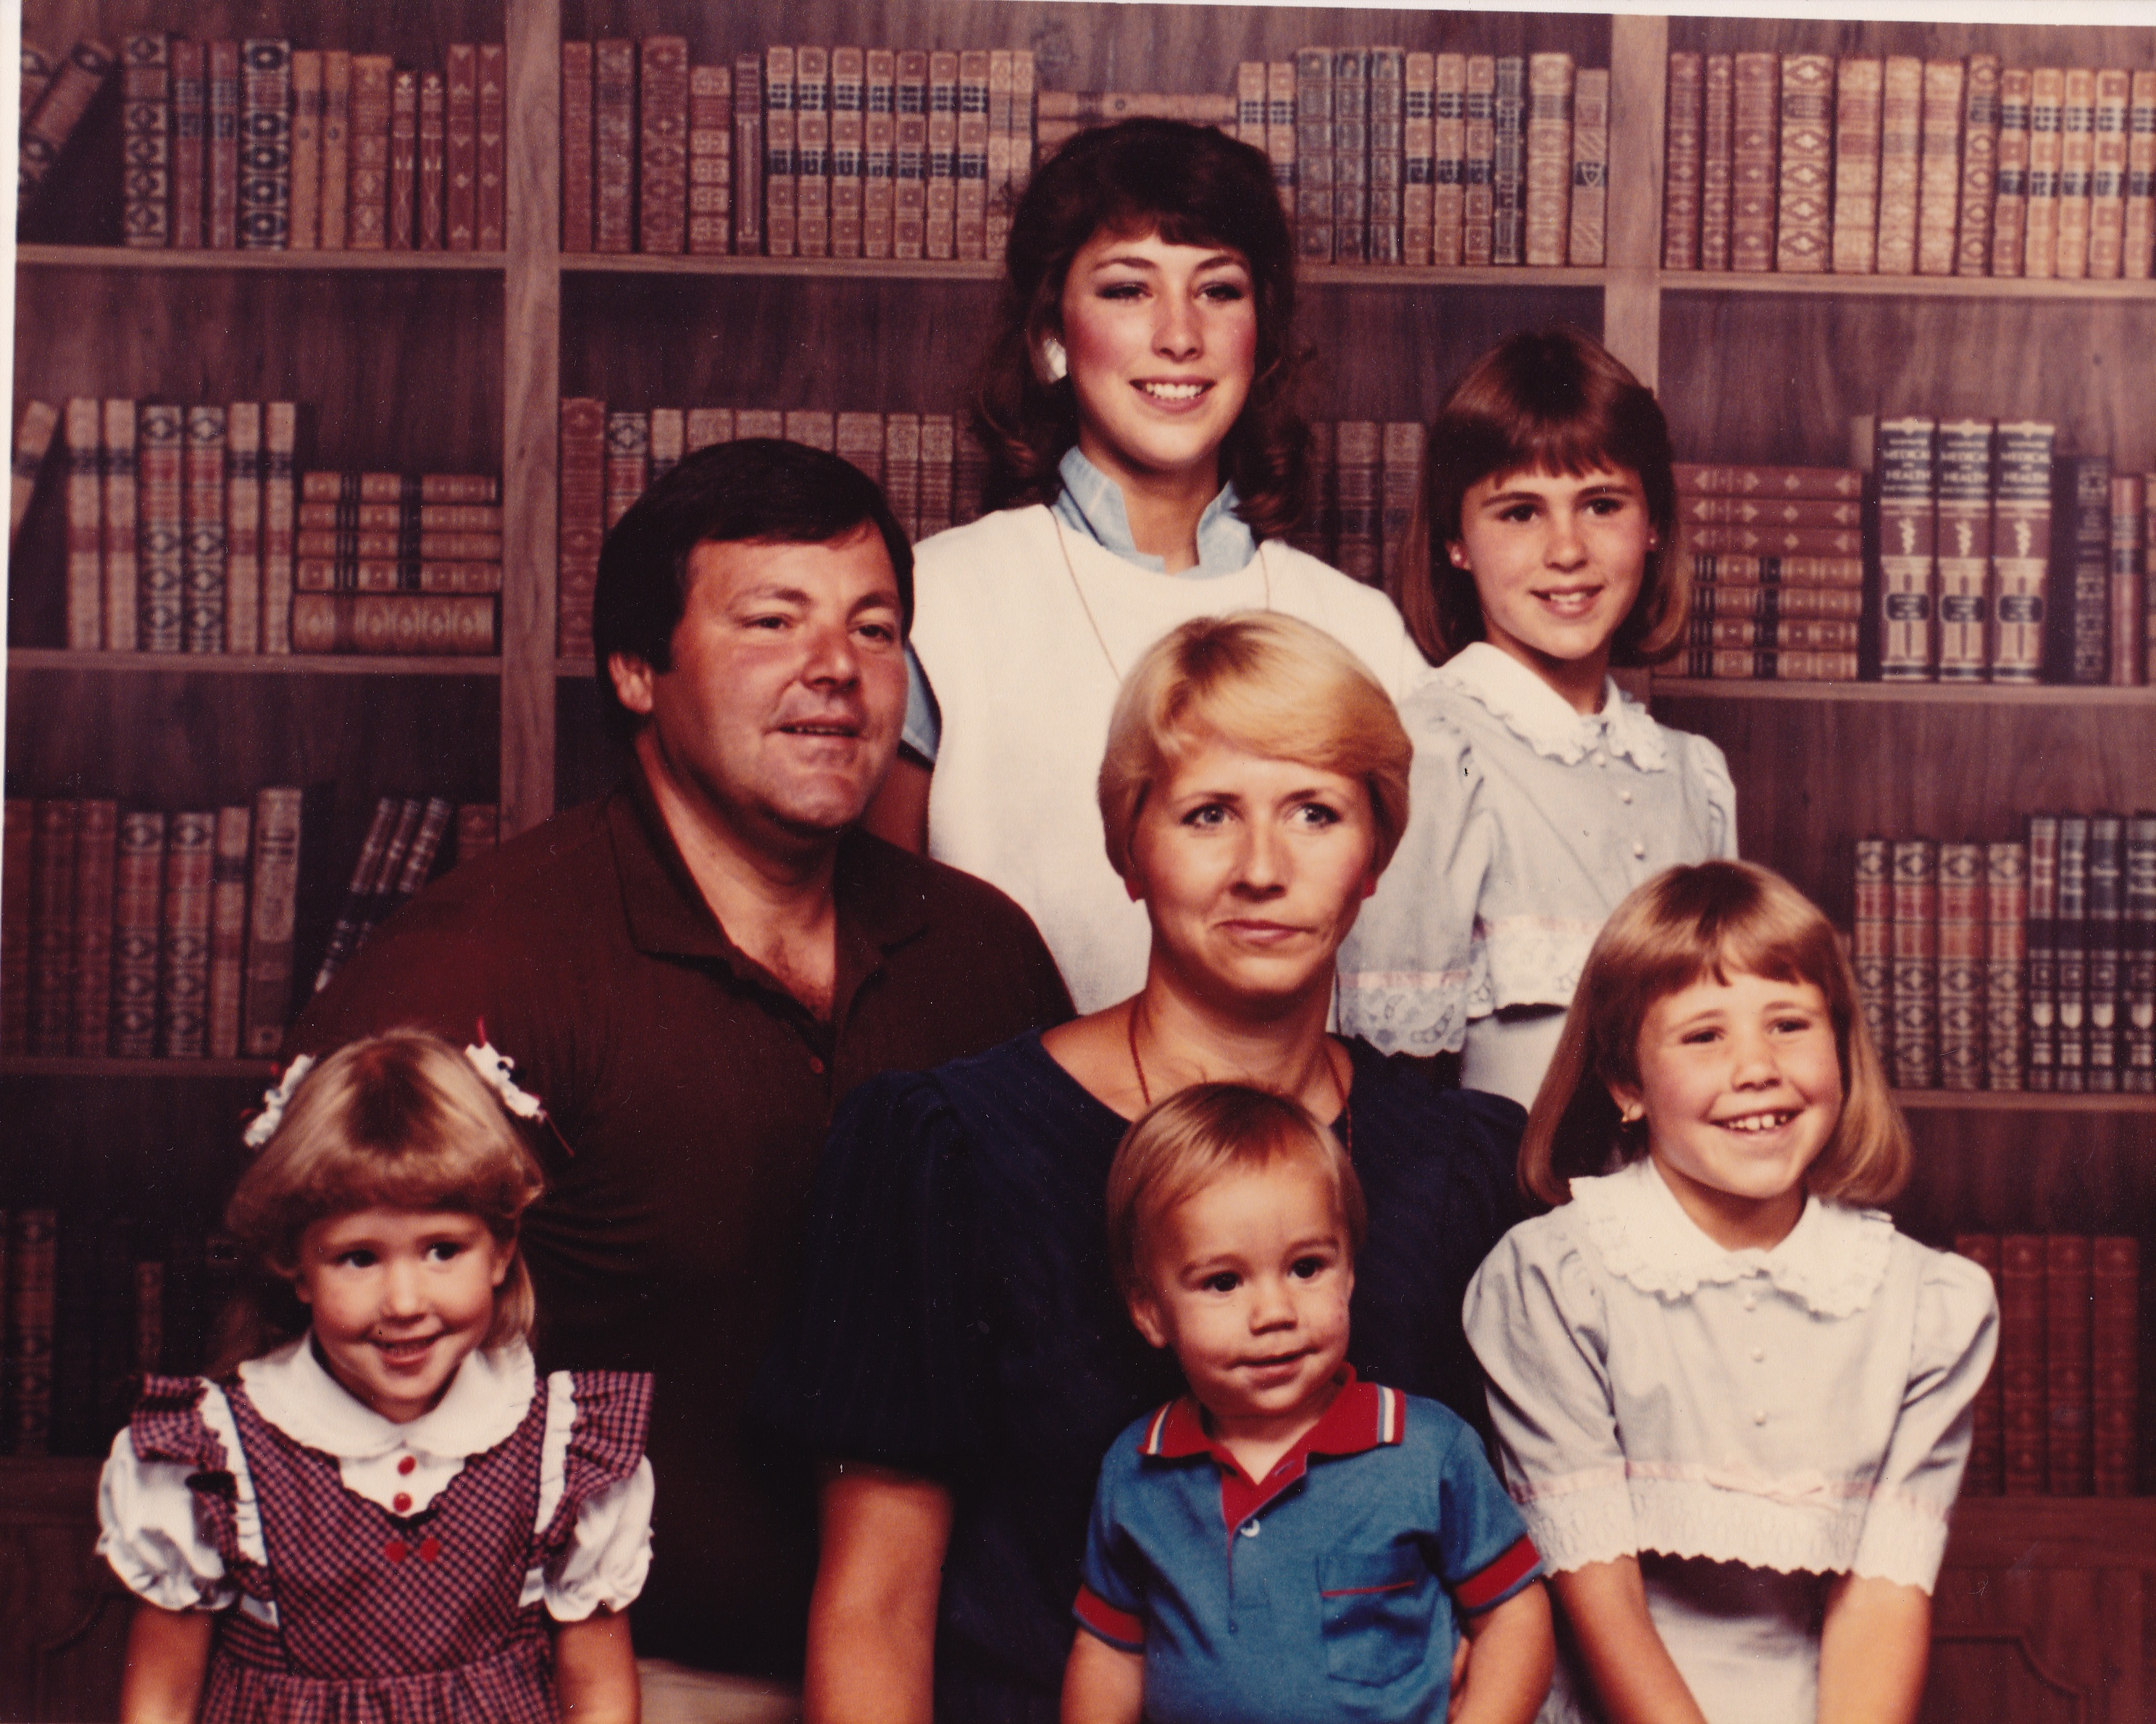 Slater Family Picture from 1985. Tom and Lisbeth Pettersson Slater, with their children, Angela, Tiffani, Stephanie, Annika and Matthew.